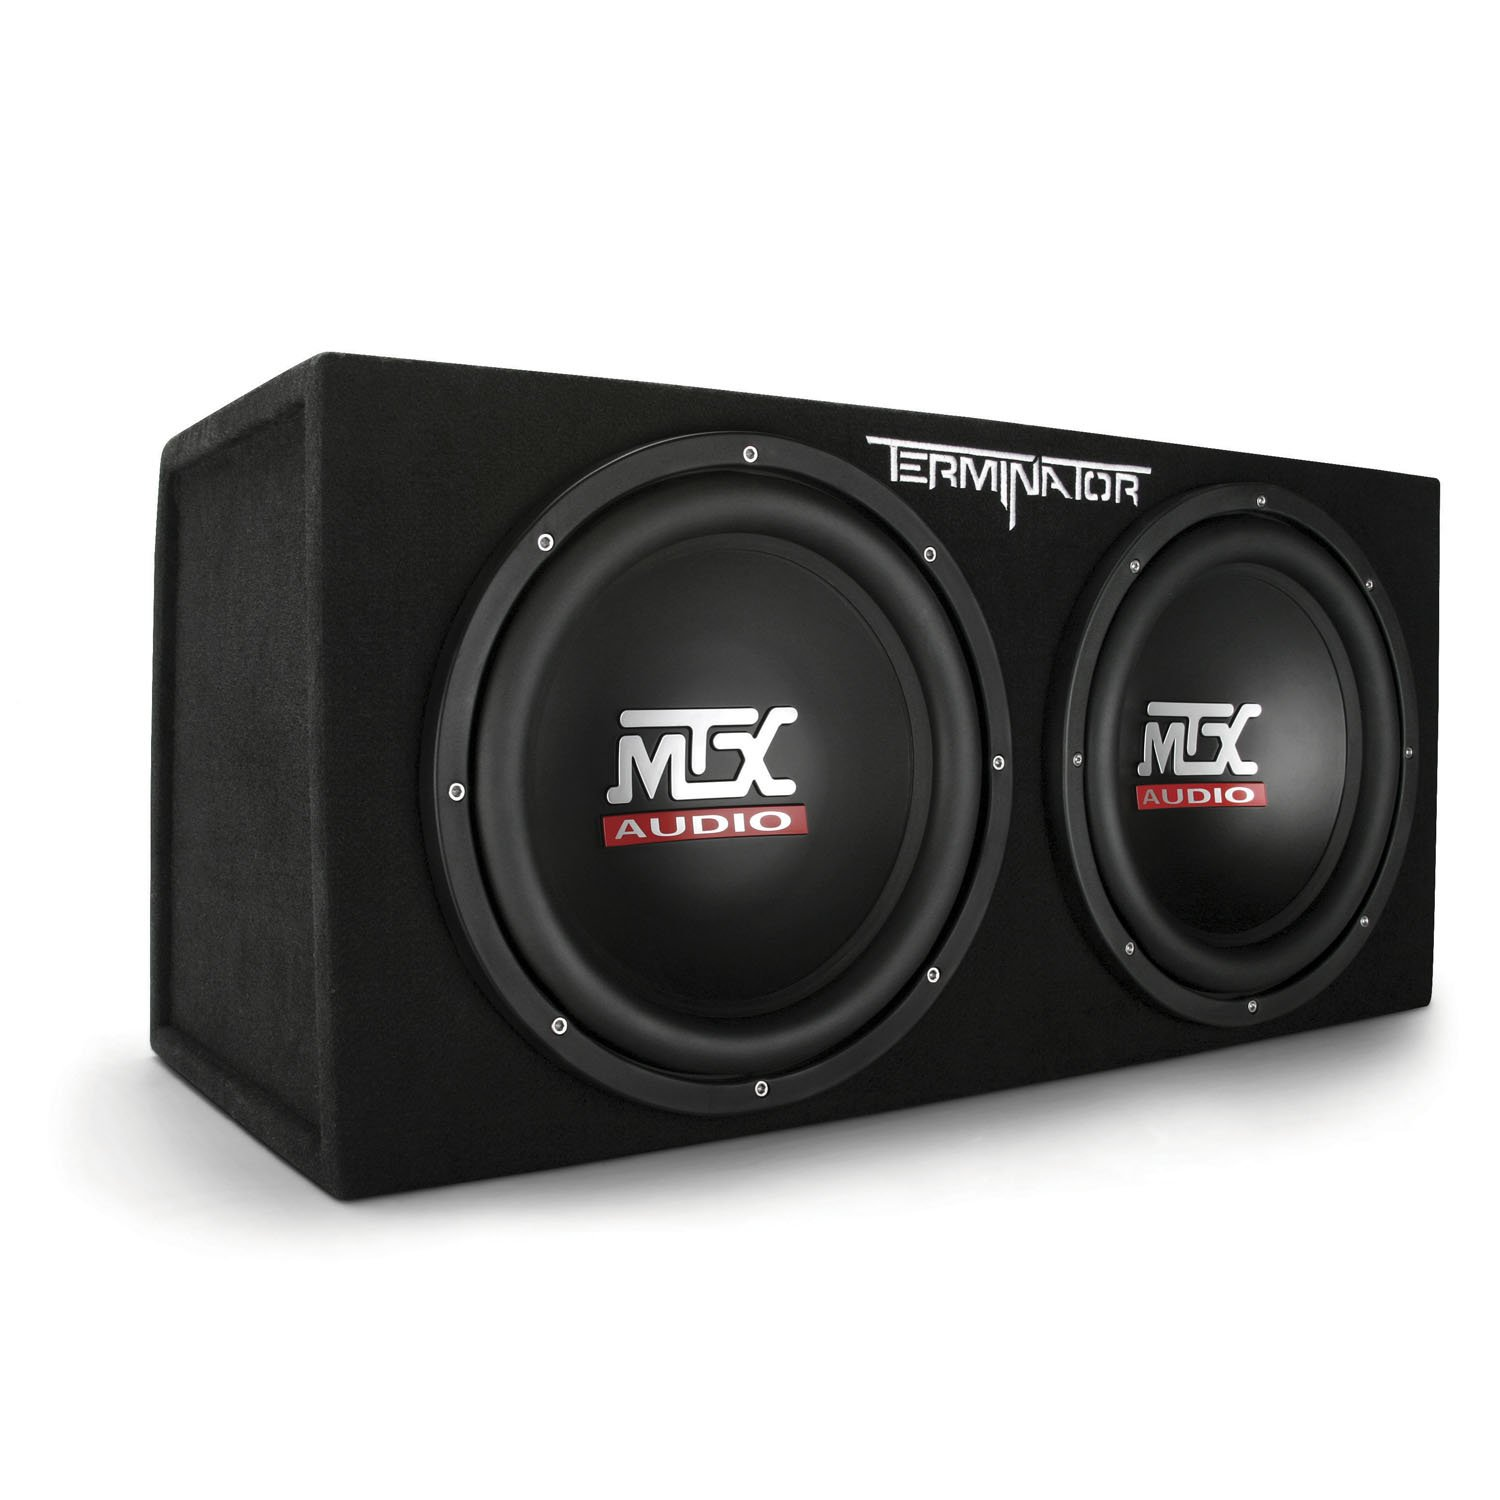 MTX Audio Terminator Series TNE212D 1,200-Watt Dual 12-Inch Sub Enclosure by MTX